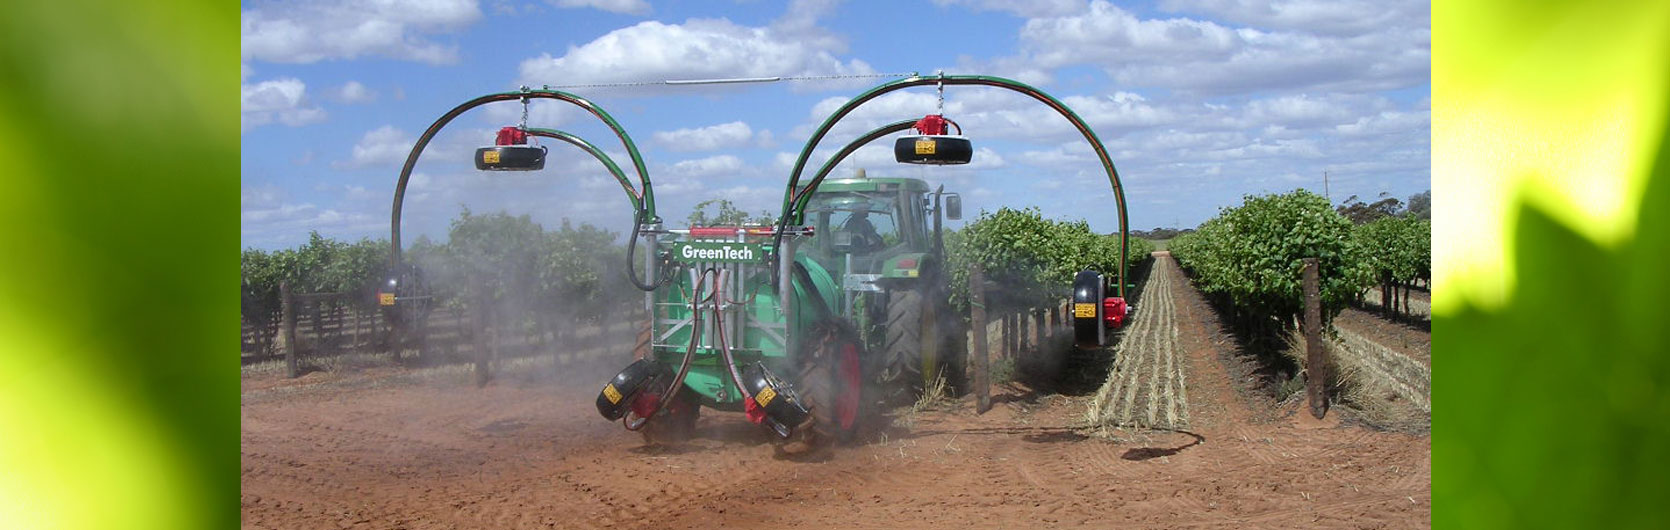 Hero_GreenTech-2-Row-Cross-Spray-System-Banner.JPG